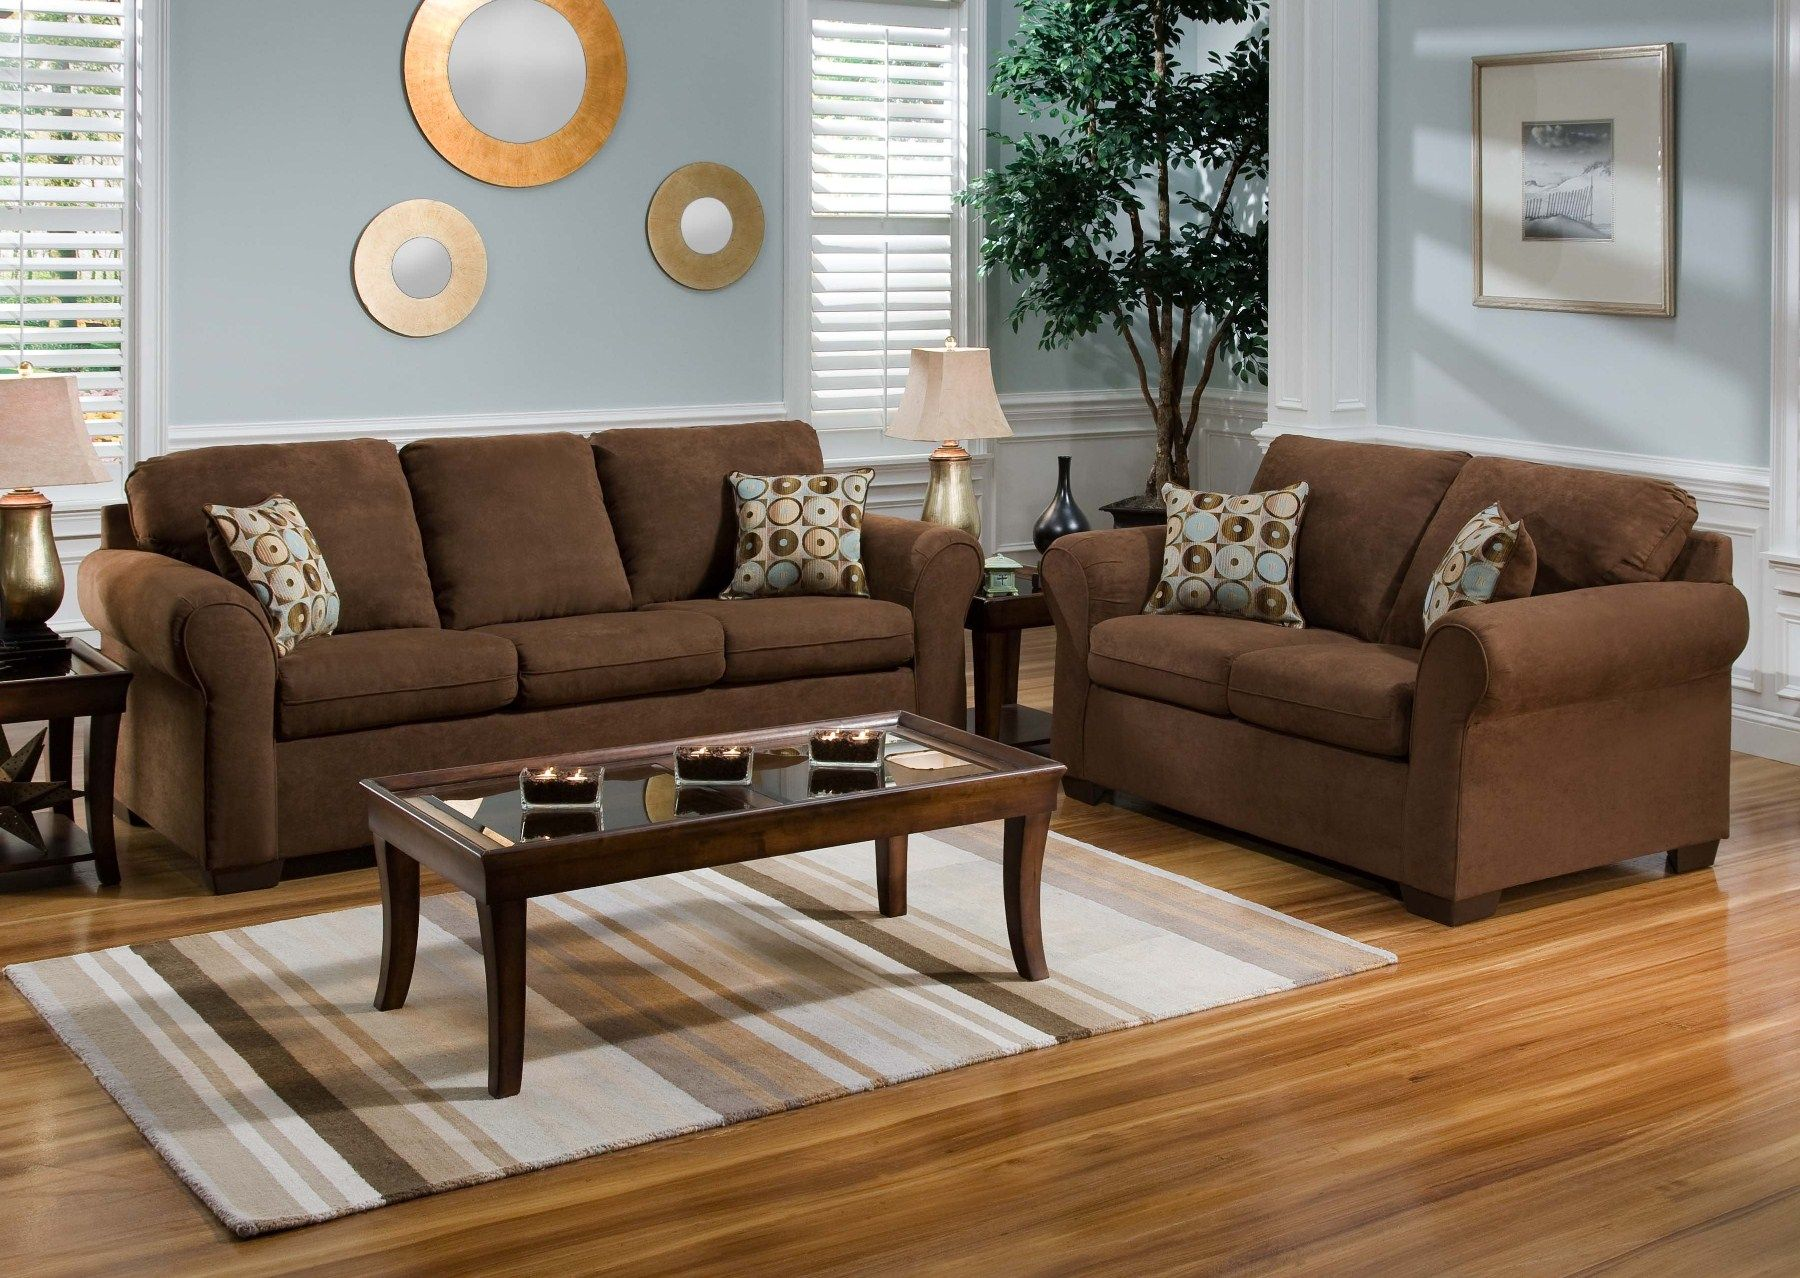 Living Room Colour Schemes Brown Sofa Warm Color With Chocolate Couch And Rectangle Glass Coffee Table